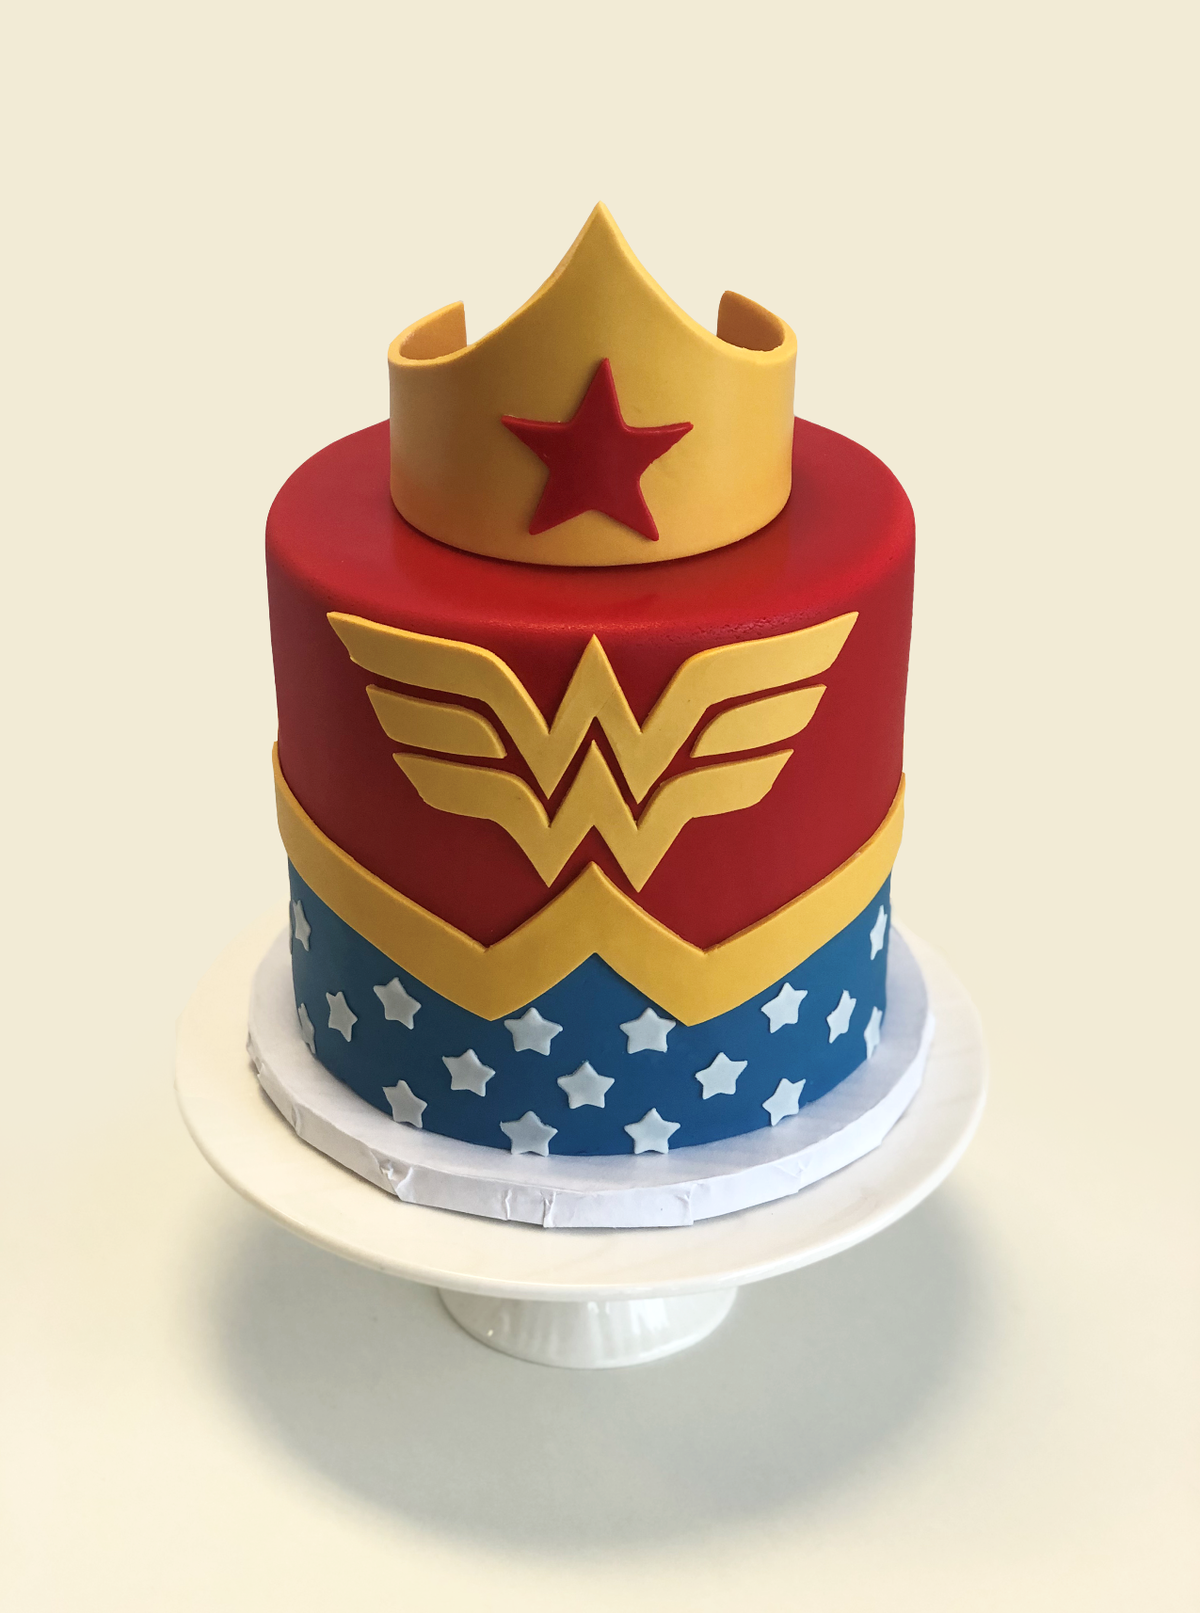 Whippt Desserts - Wonder Woman Cake Feb 2019